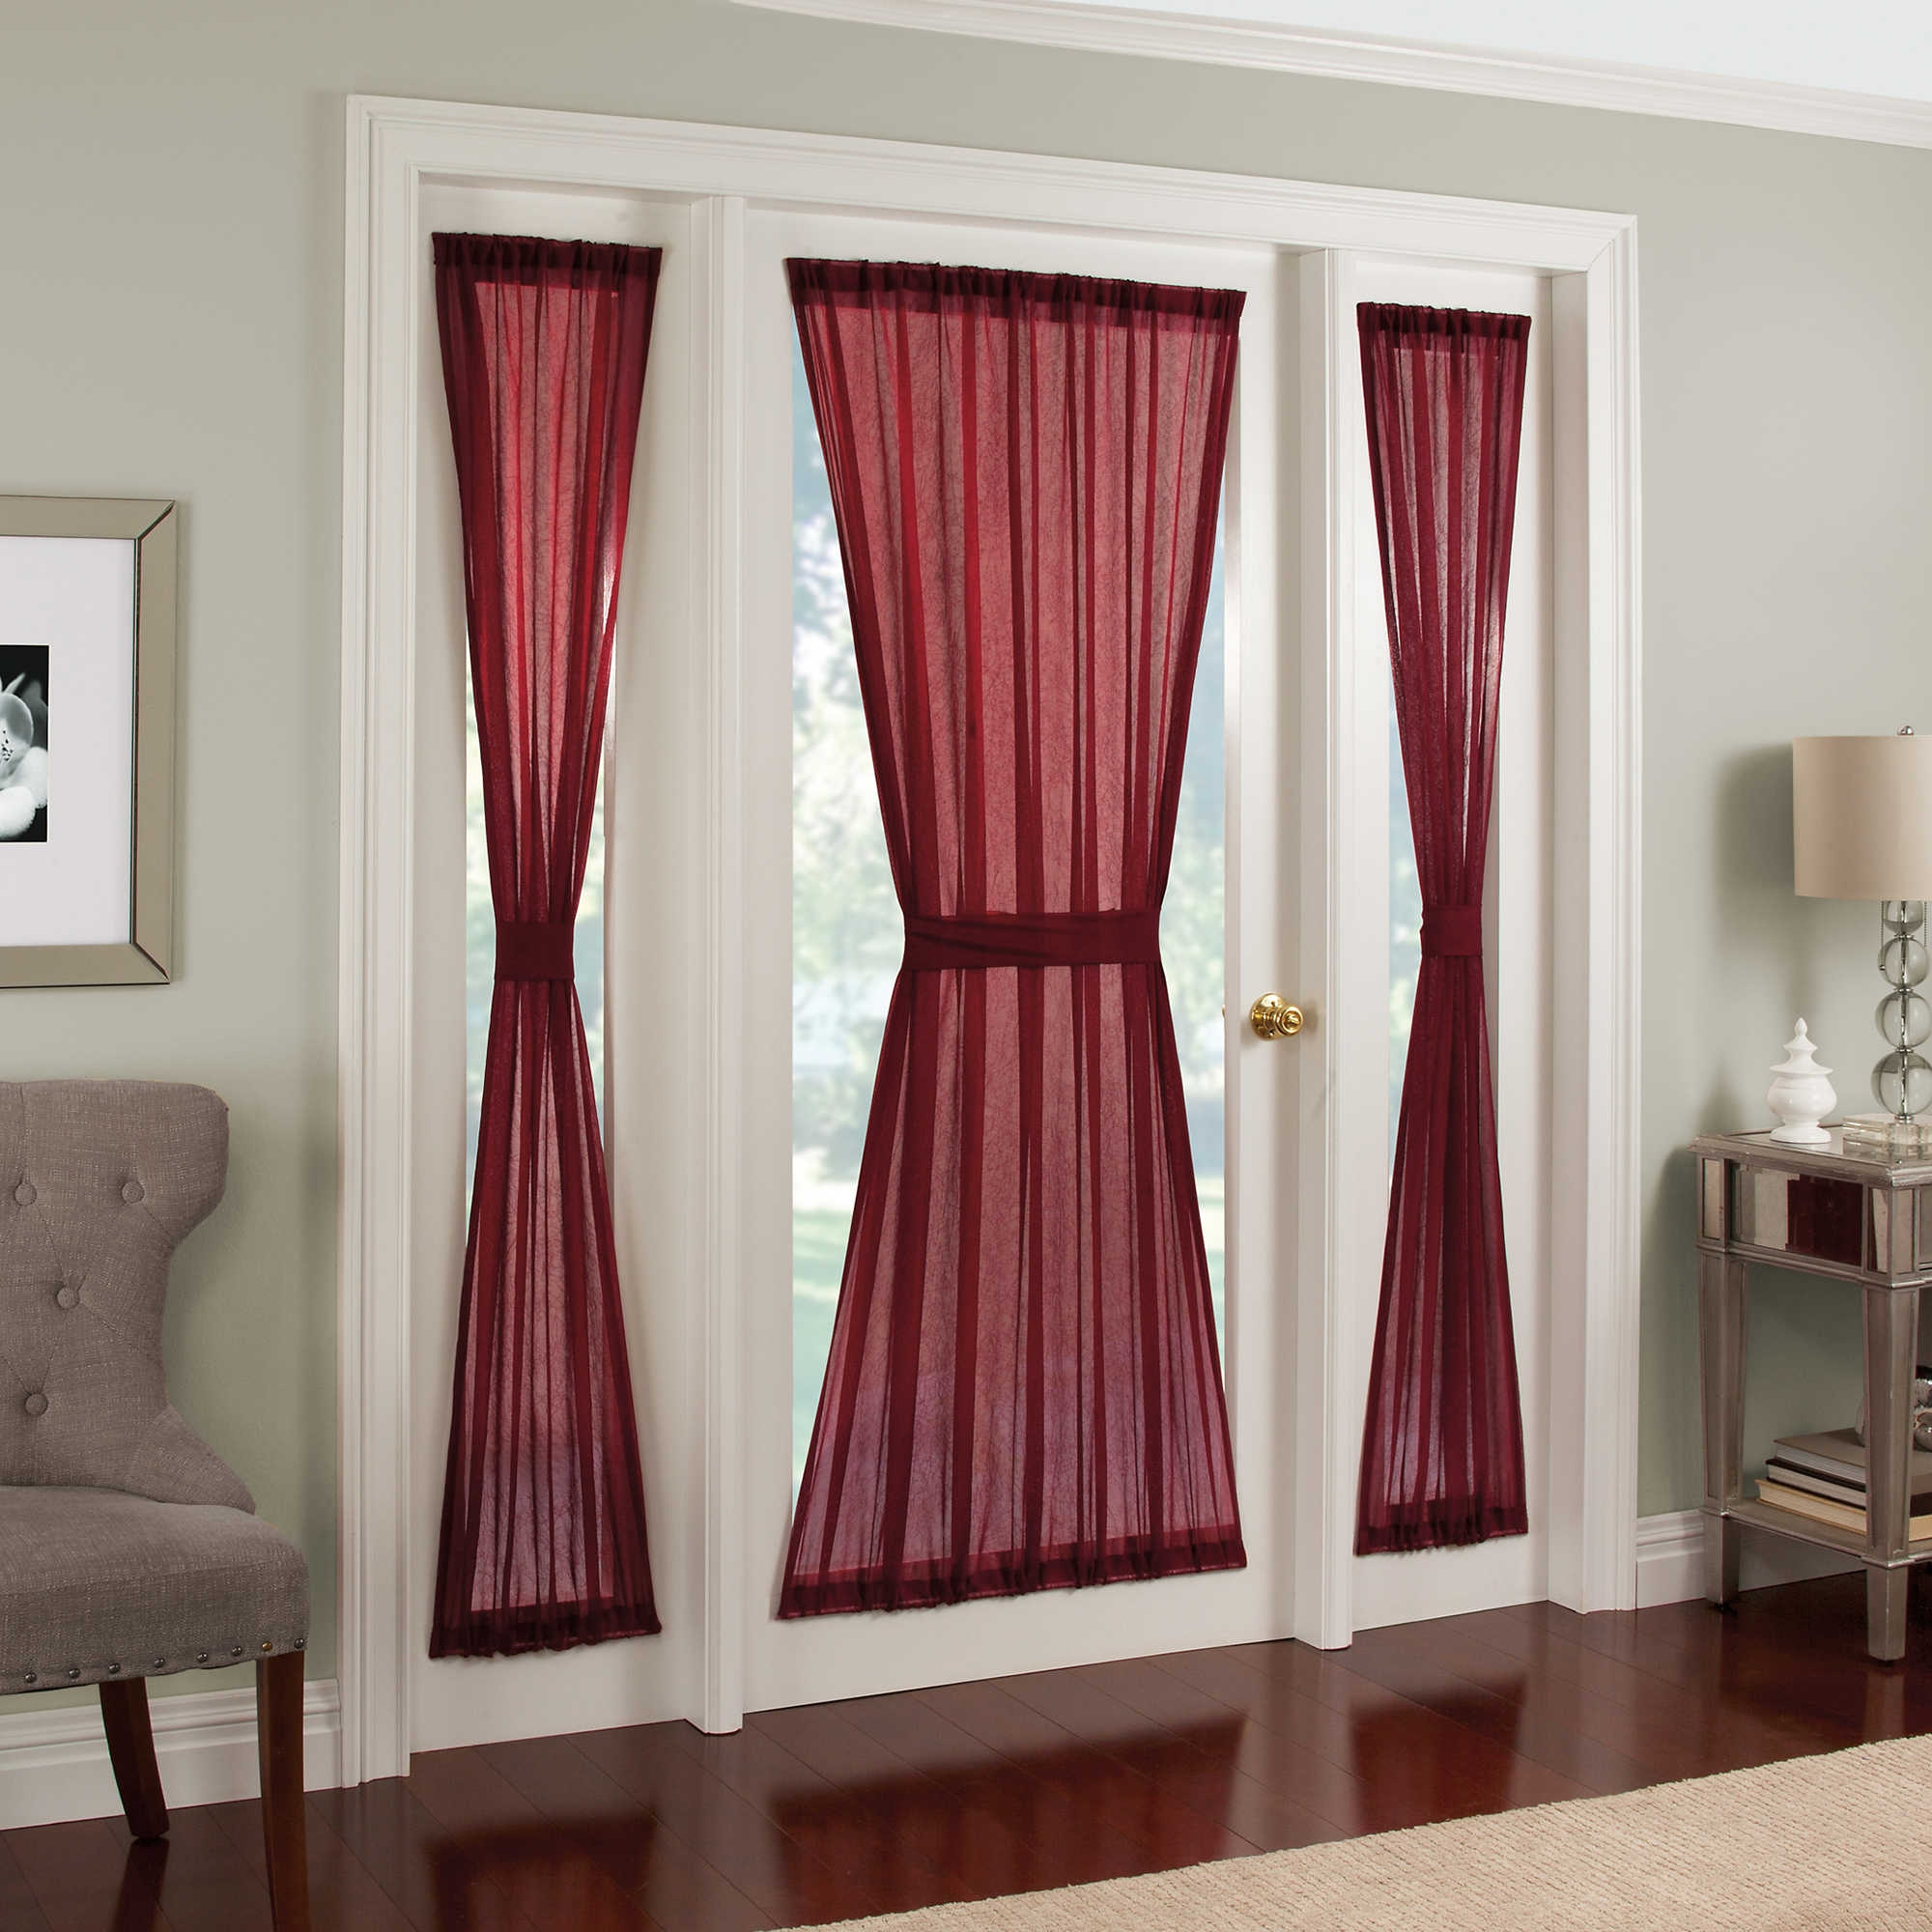 Window Coverings For Front Door Sidelights Free Image Pertaining To Main Door Curtains (Image 15 of 15)